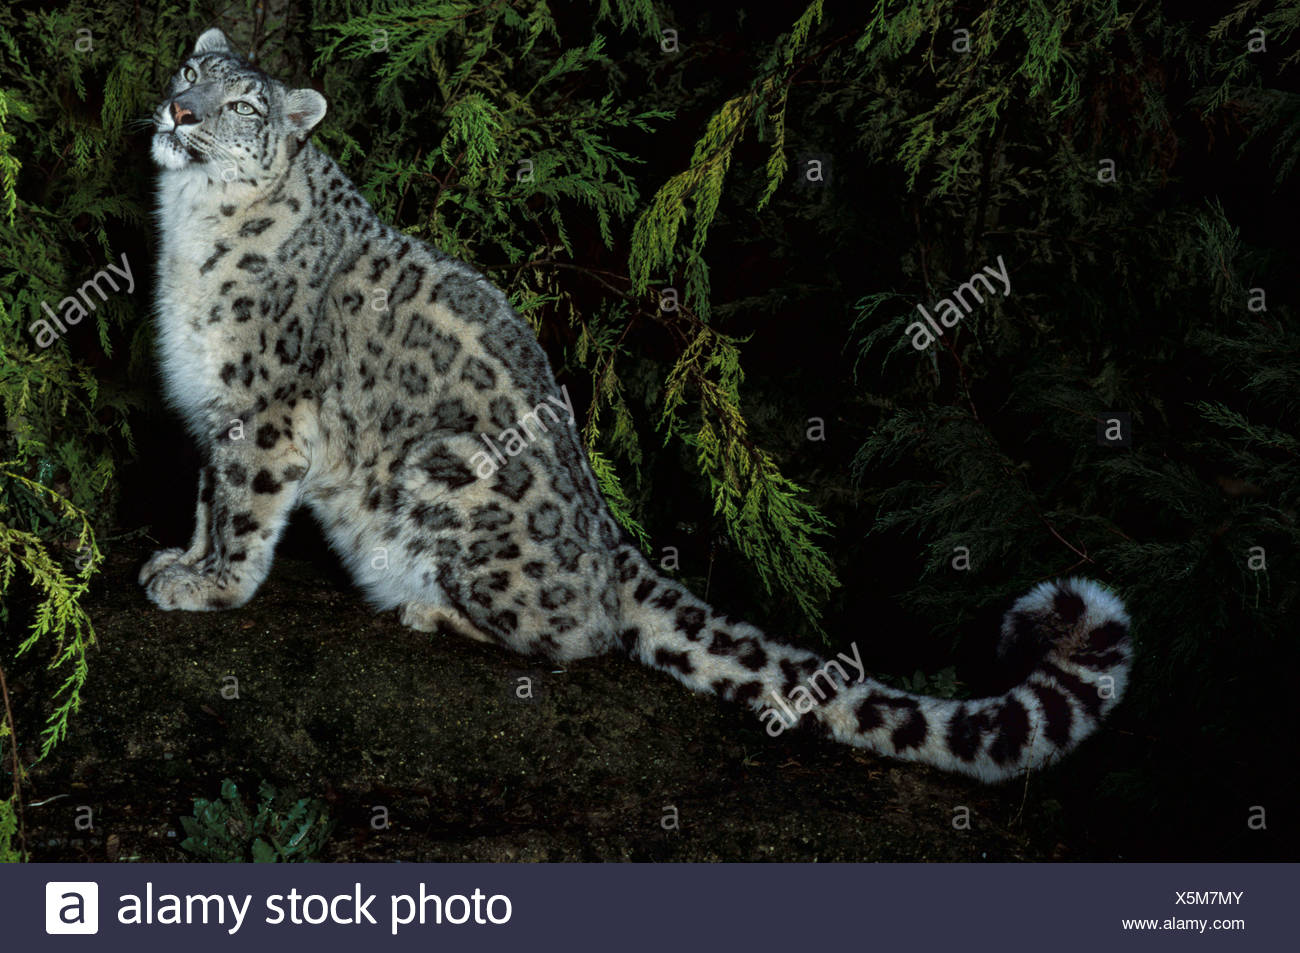 Snow Leopard (Panthera uncia) - captive, nocturnal, showing long strong thick tail, spotted pattern dense fur - Stock Image